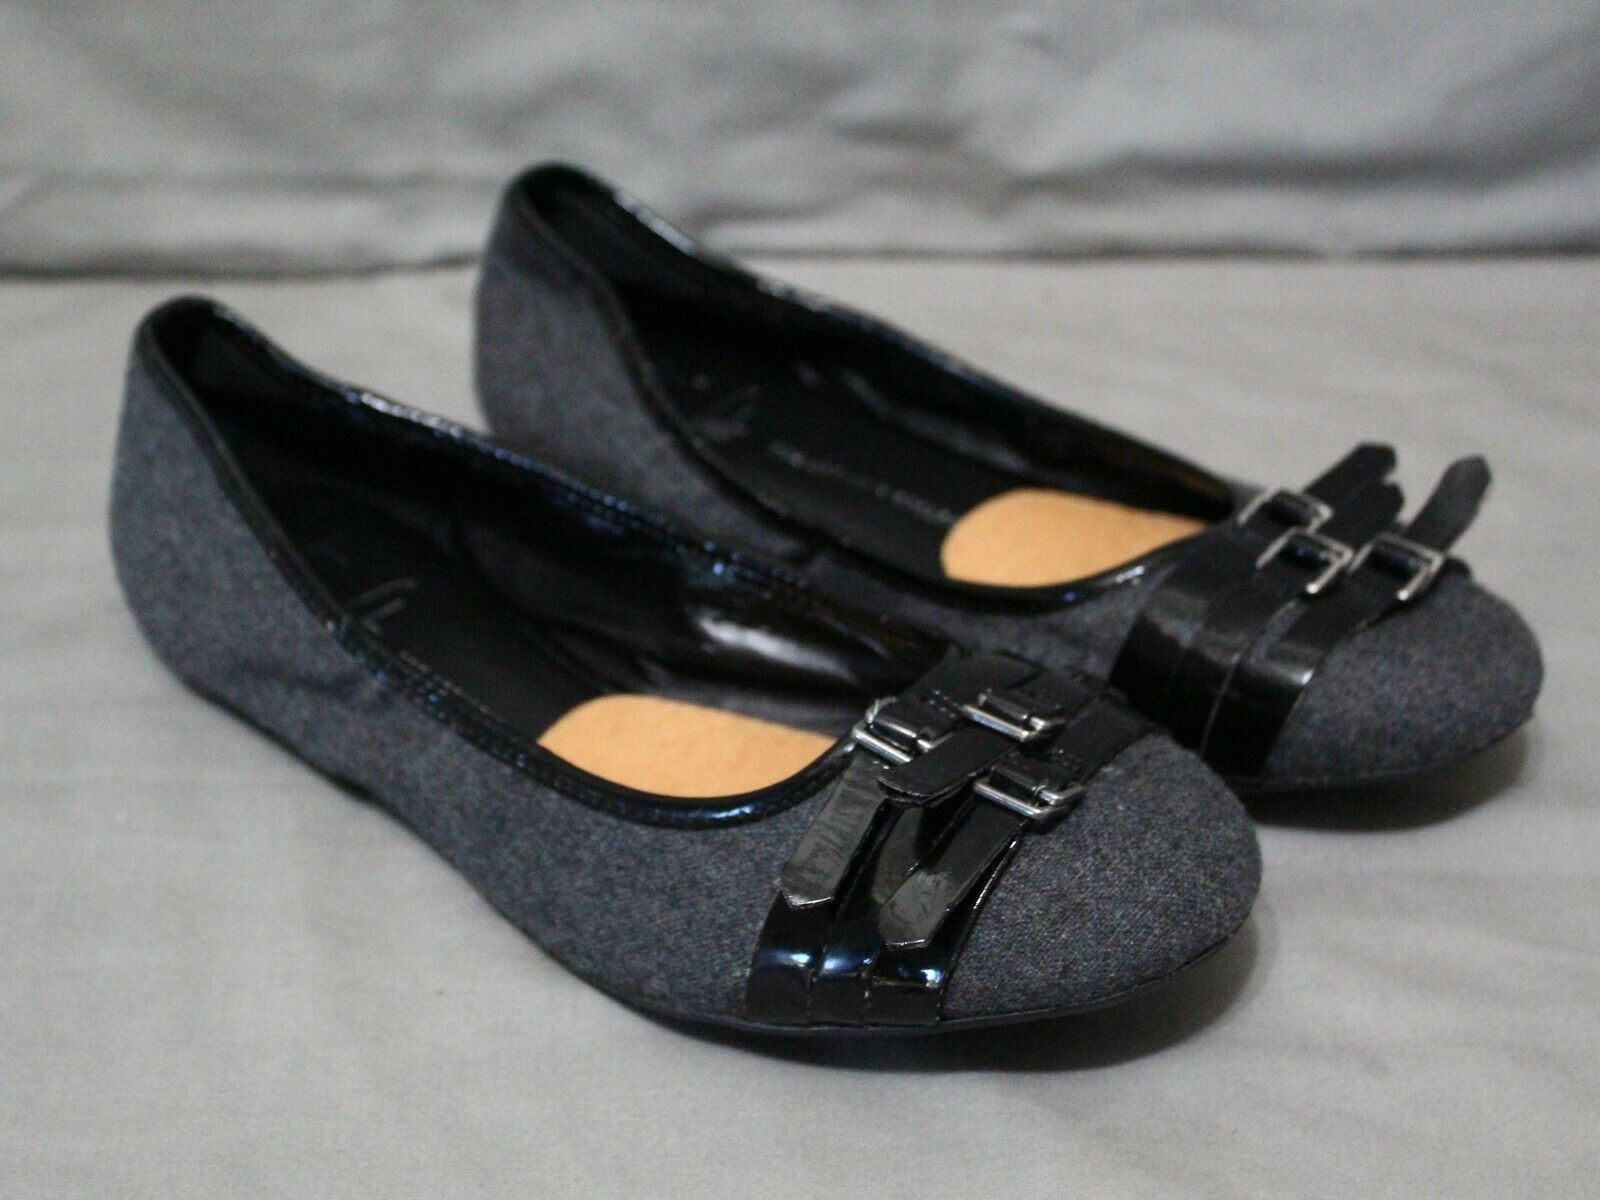 FRANCO womens slip on flats charcoal fabric A-ARIANA ballet shoes size 9.5 Med